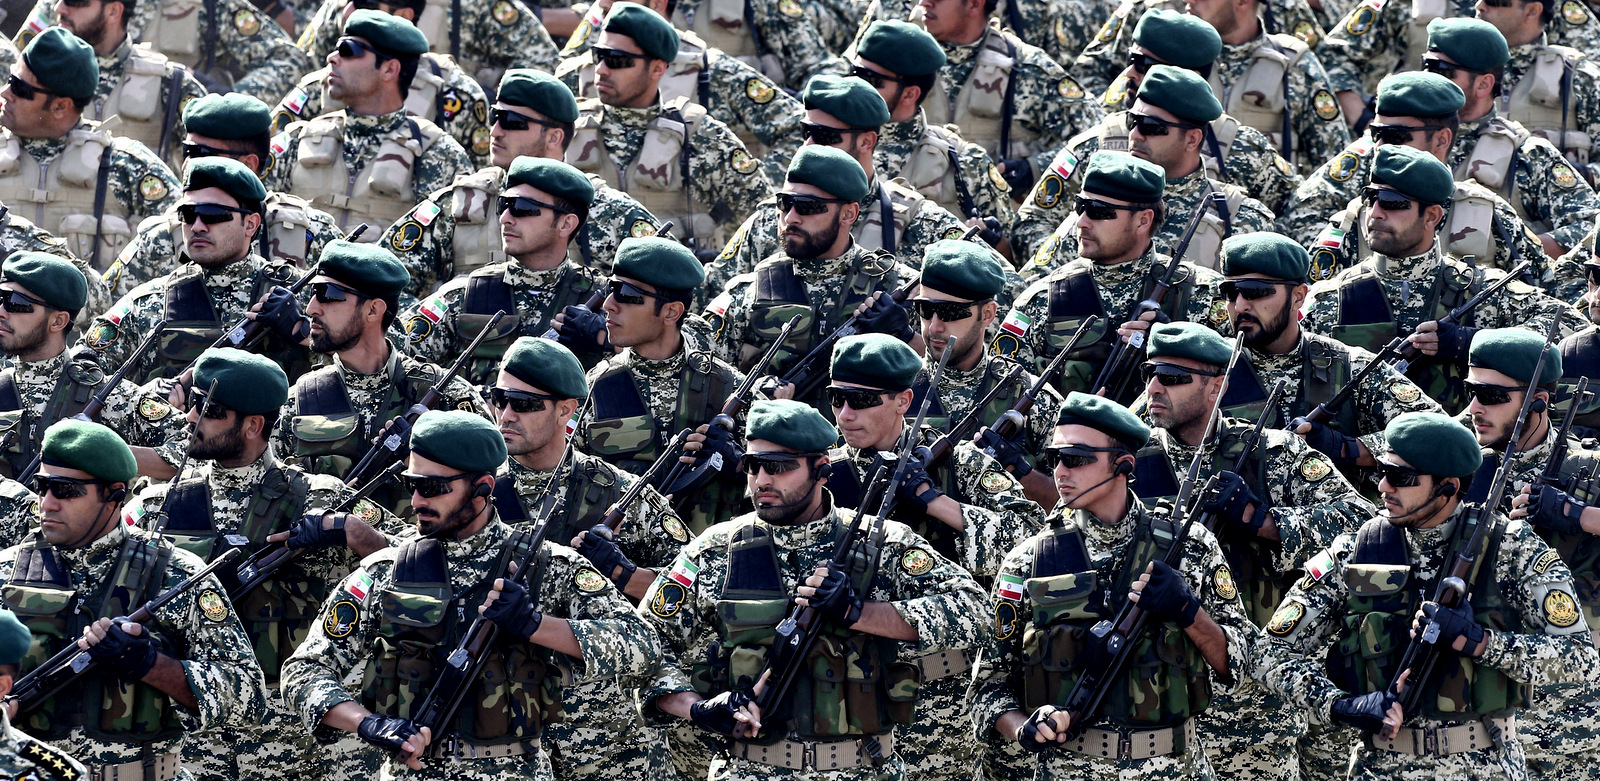 Iranian army troops march during a parade marking National Army Day in front of the mausoleum of the late revolutionary founder Ayatollah Khomeini, just outside Tehran, Iran, April 18, 2018. (AP/Ebrahim Noroozi)